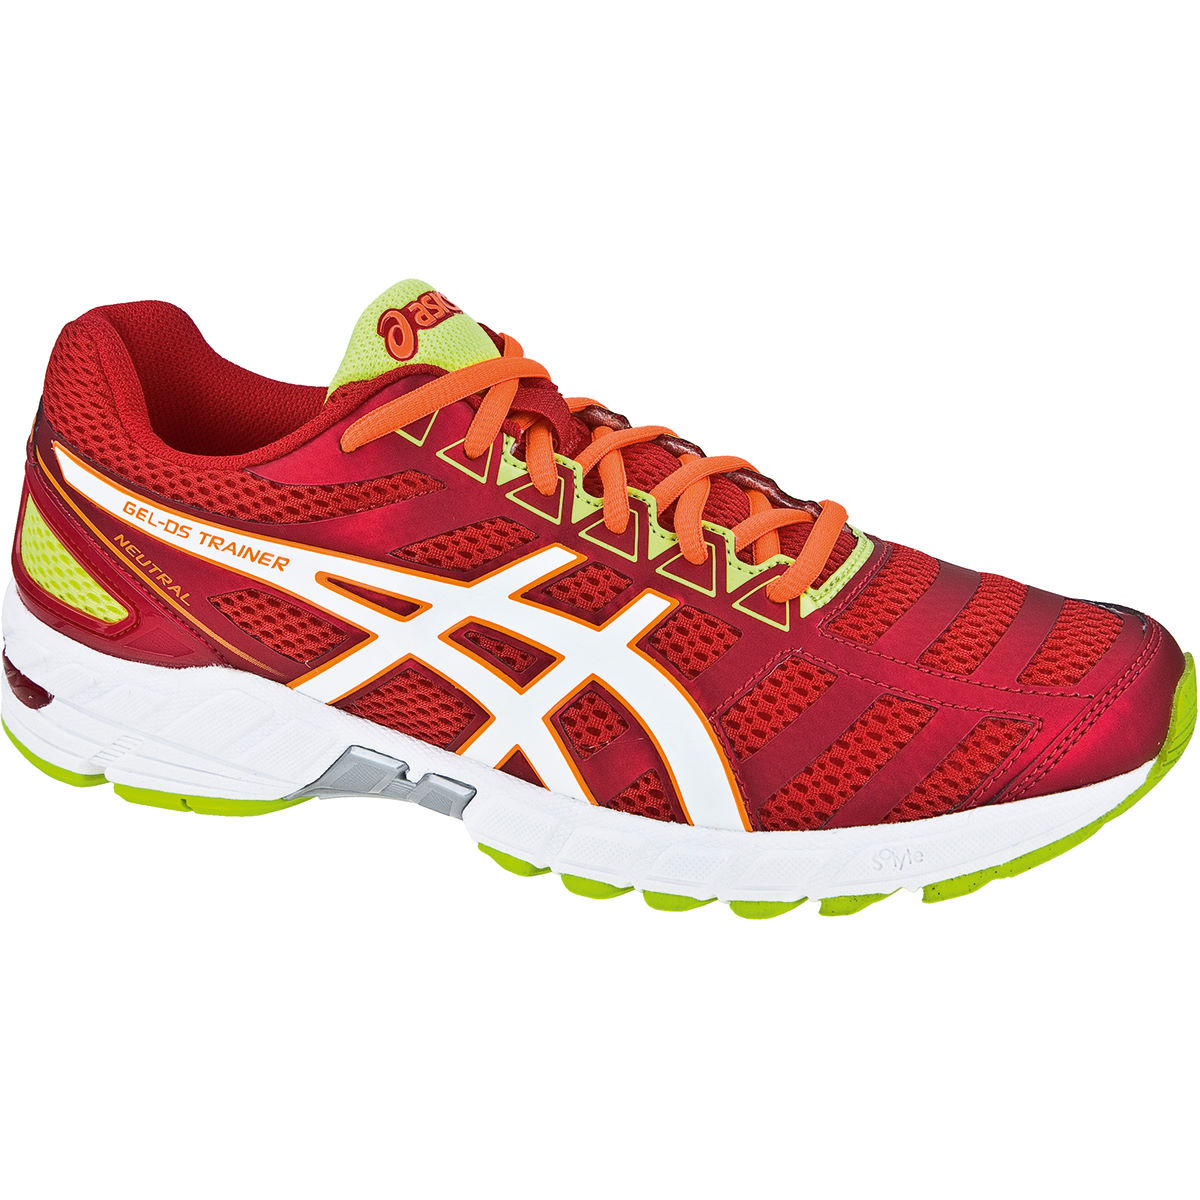 asics ds trainer 41 5 benefits of cycling trainer. Black Bedroom Furniture Sets. Home Design Ideas